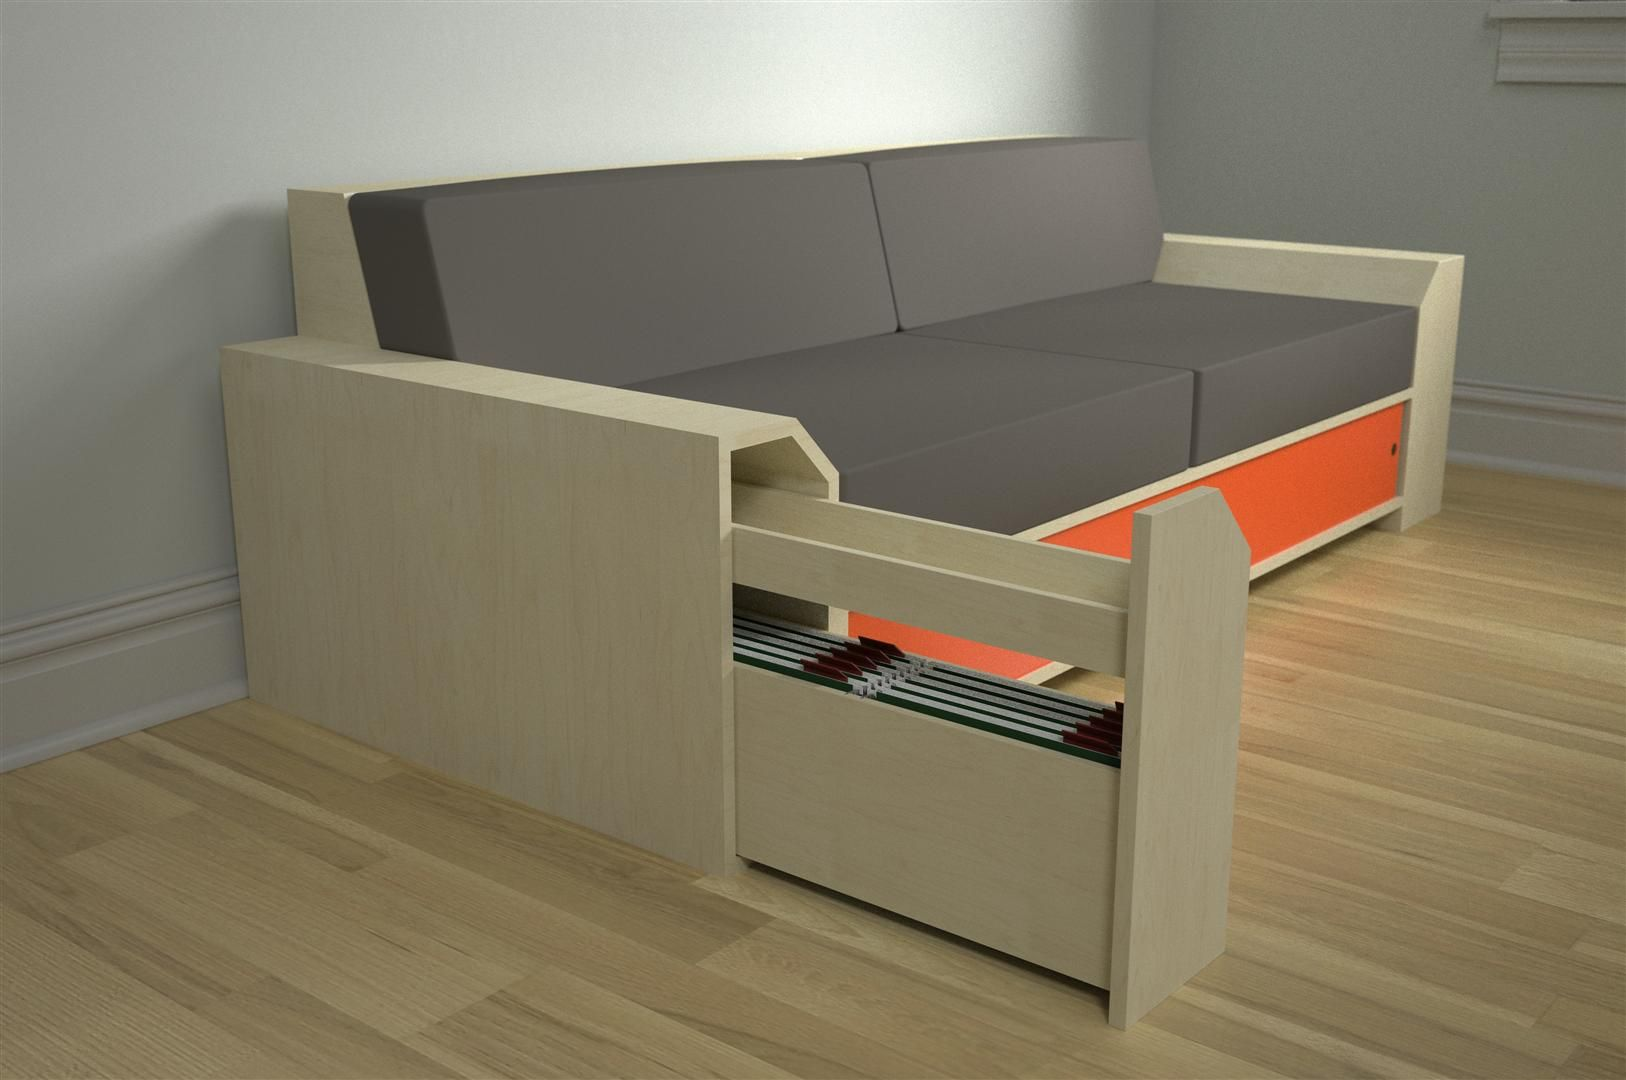 """Modular Storage Seating- concept I'm working on, all parts are modular and interchangeable, and designed to add storage to a piece that usually ignores it, the sofa.     Ends can be bookcases, or pull out drawers for storage or files, base can be sliding door cabinet, drawers, fold out bed. No back makes it a day bed.    It's sort of based on the premise that """"working at home"""" often means """"working on the couch,"""" and the problem with that is there's nowhere to put all your crap.    Thoughts?"""